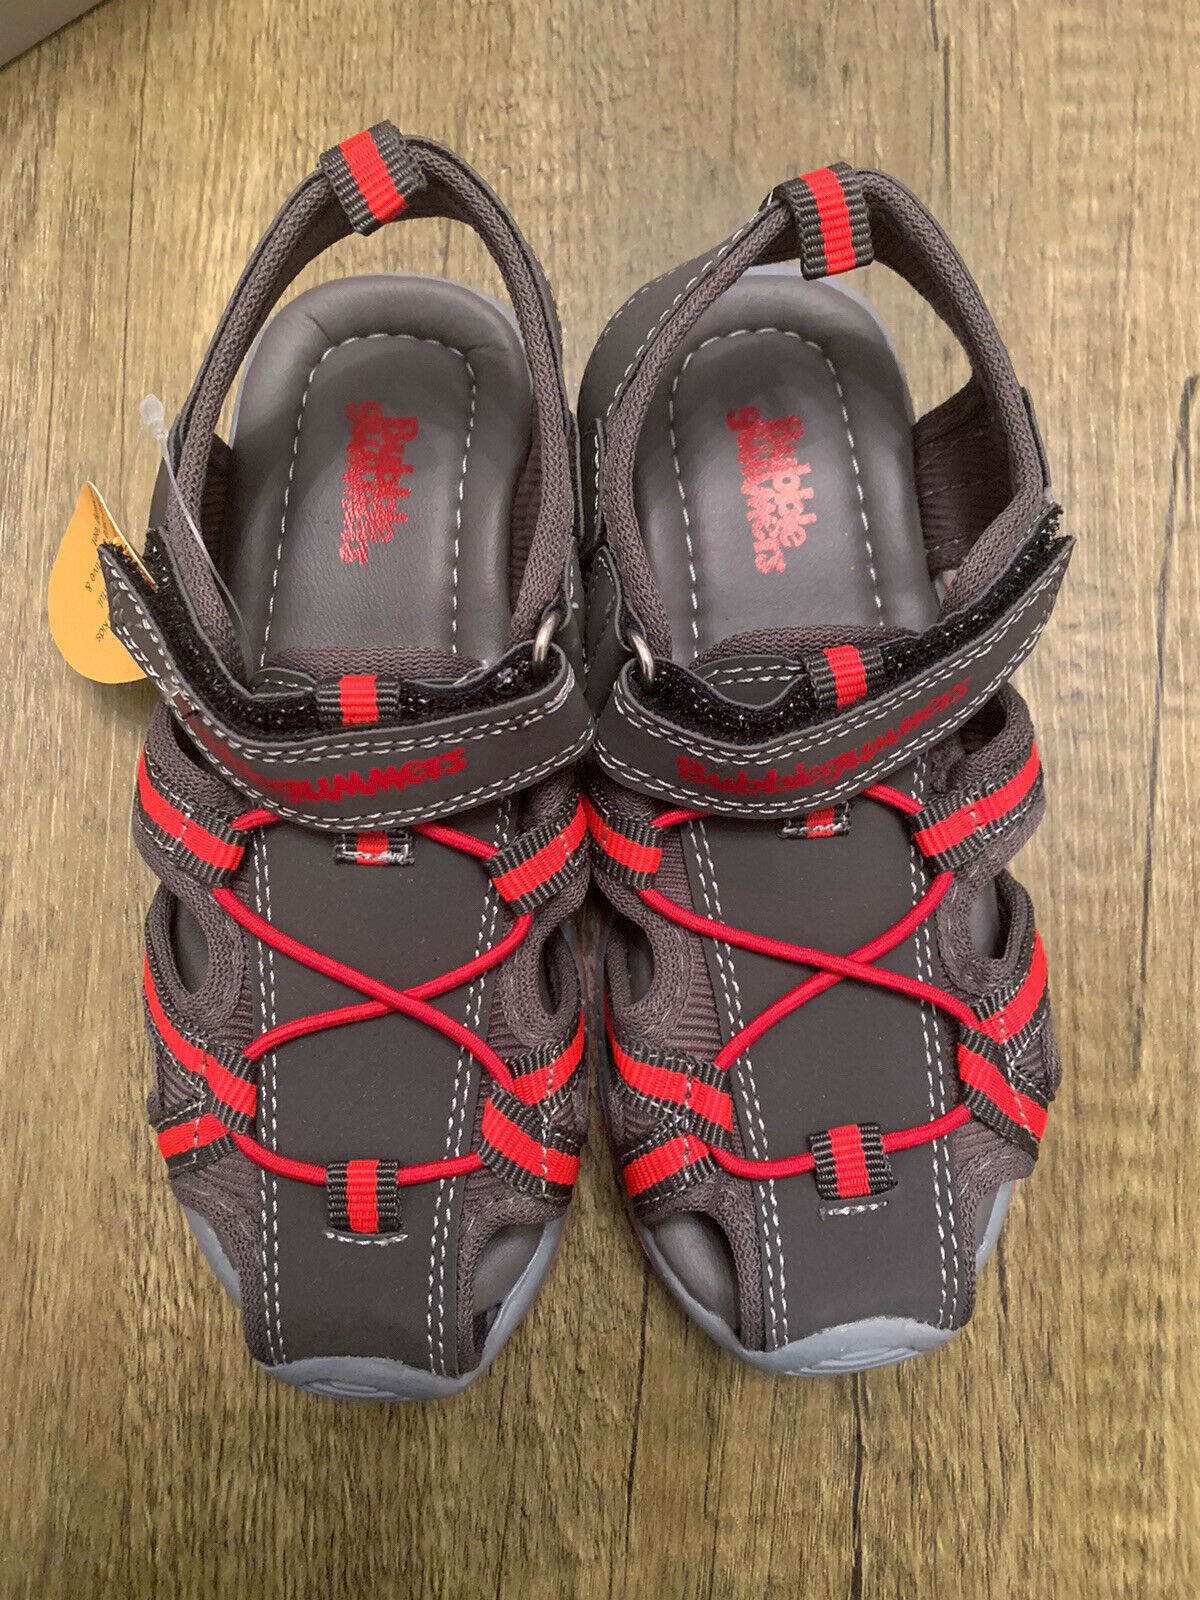 BOYS SANDALS SHOES BRAND NEW SIZE 12 KIDS GREY RED SUMMER WALKING CLOSED TOE